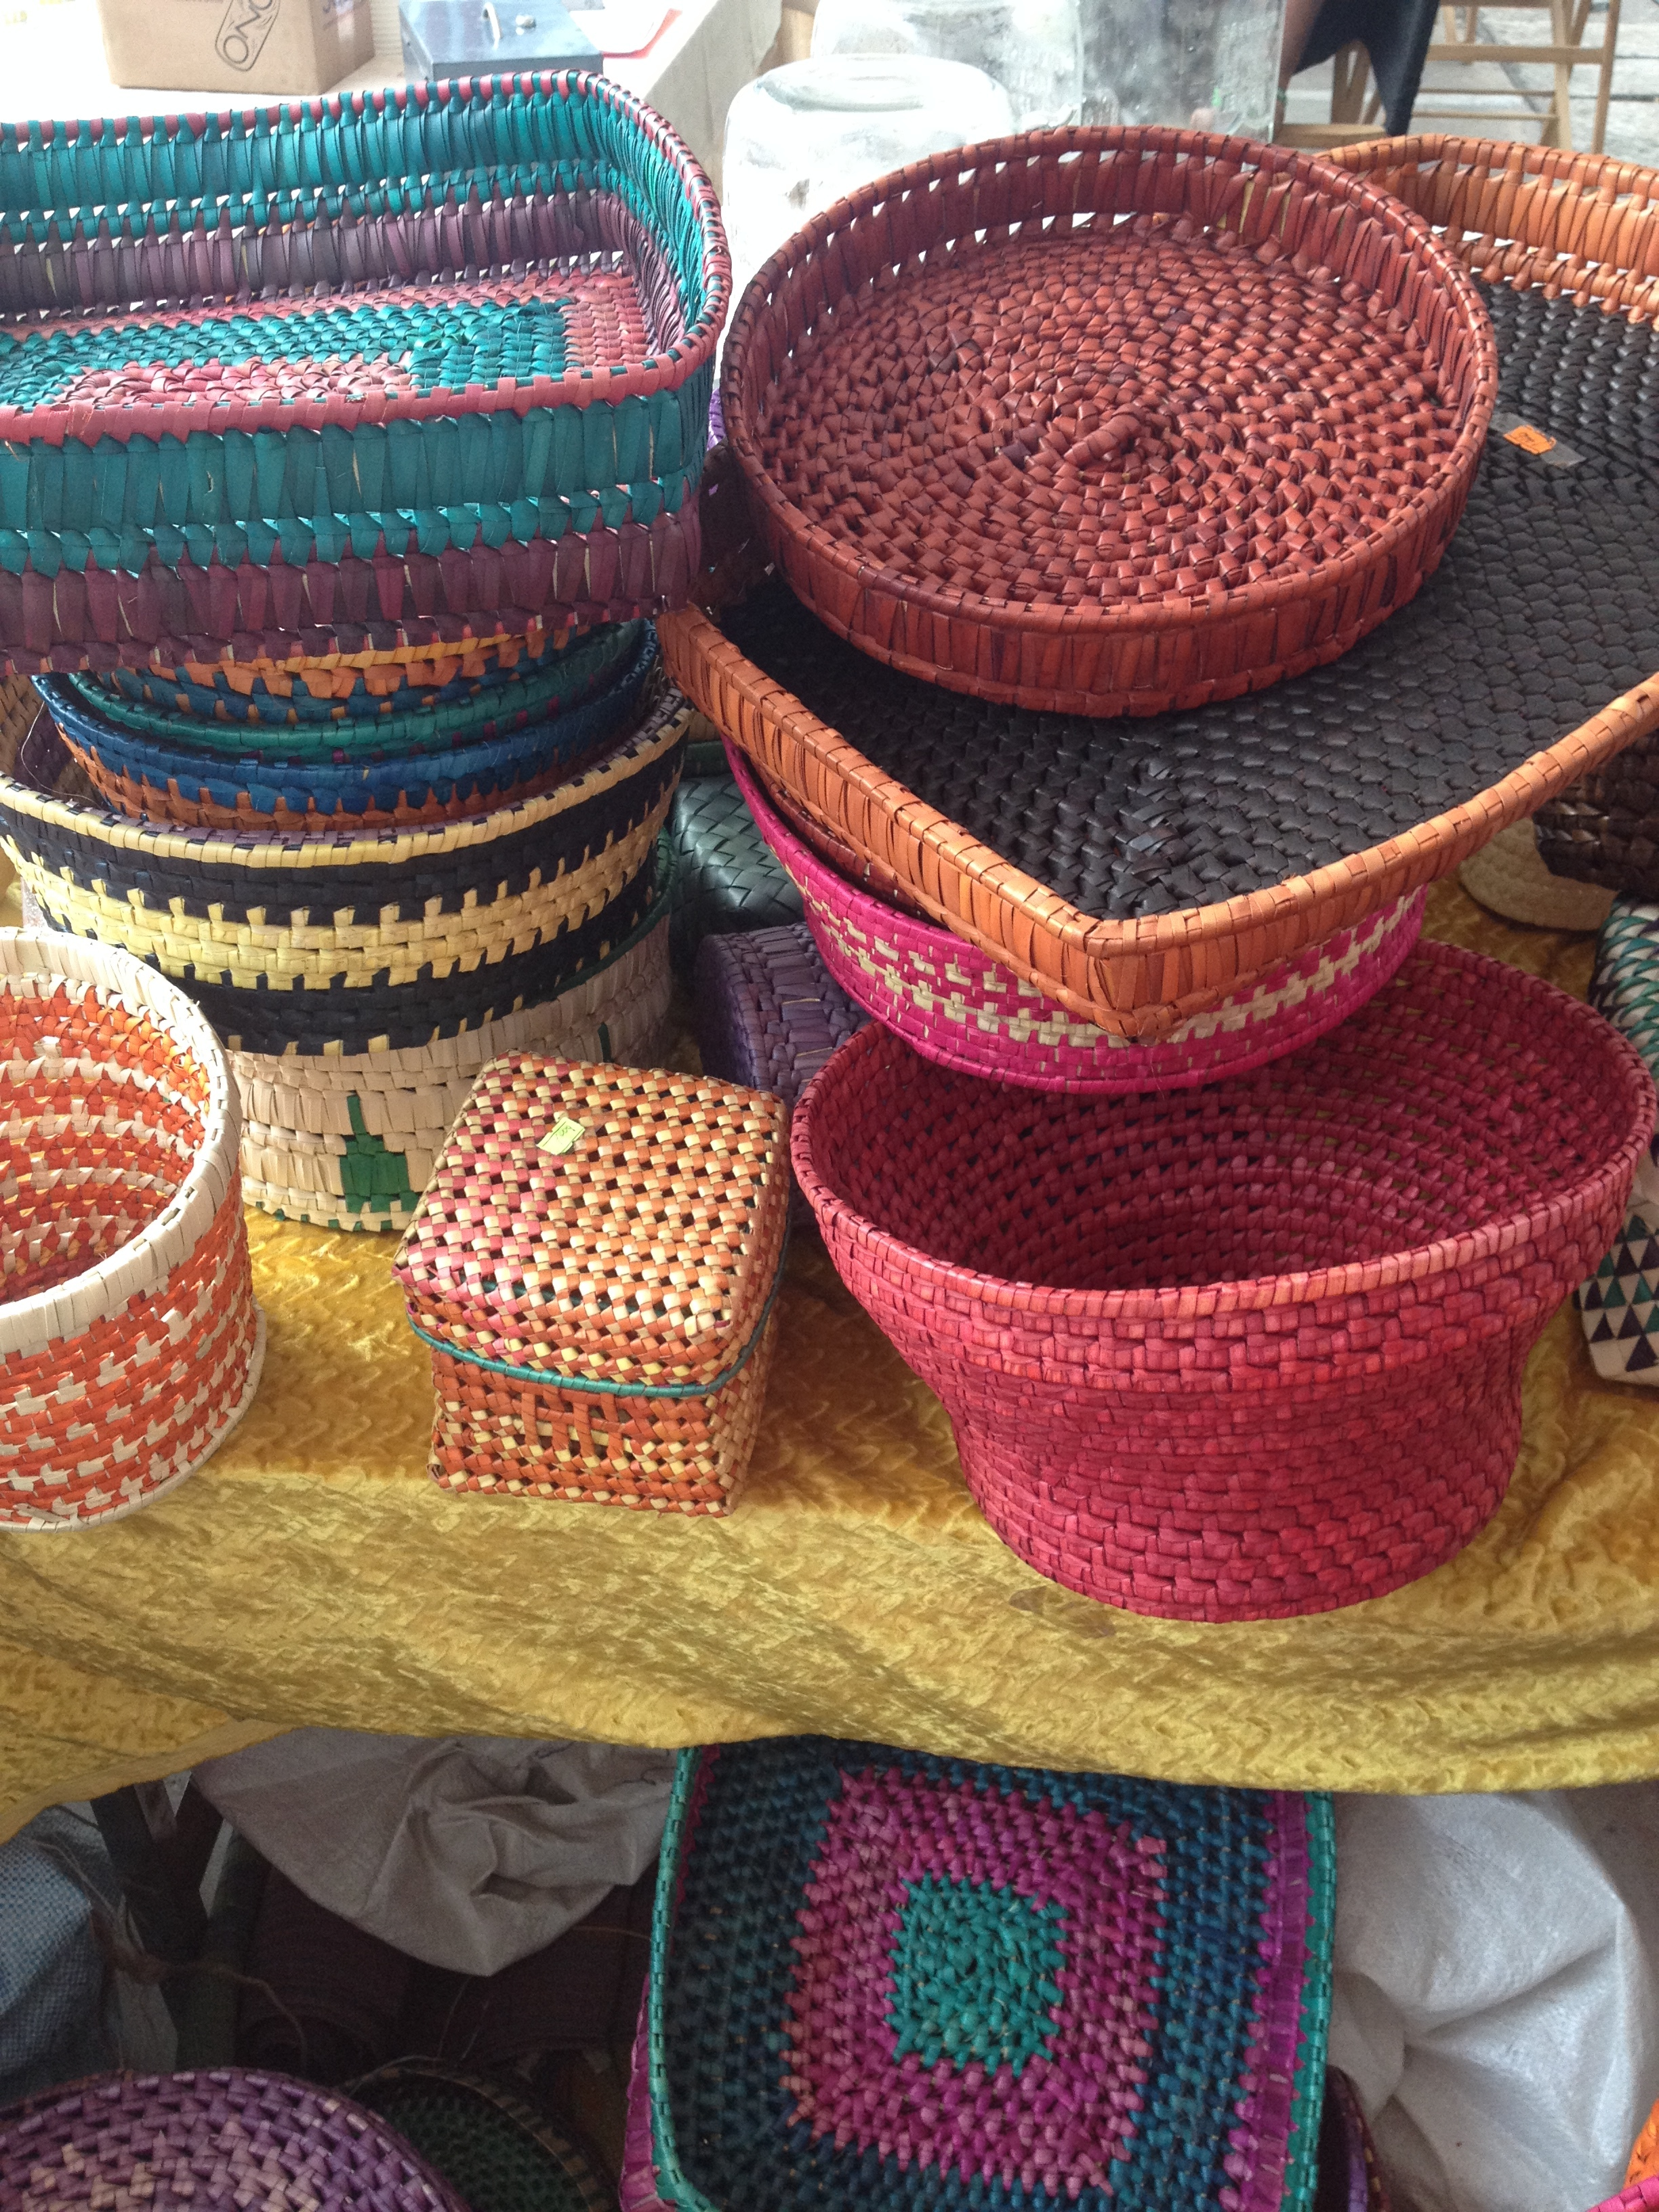 Handcrafted bags and baskets from Pulathisi at Good Market.